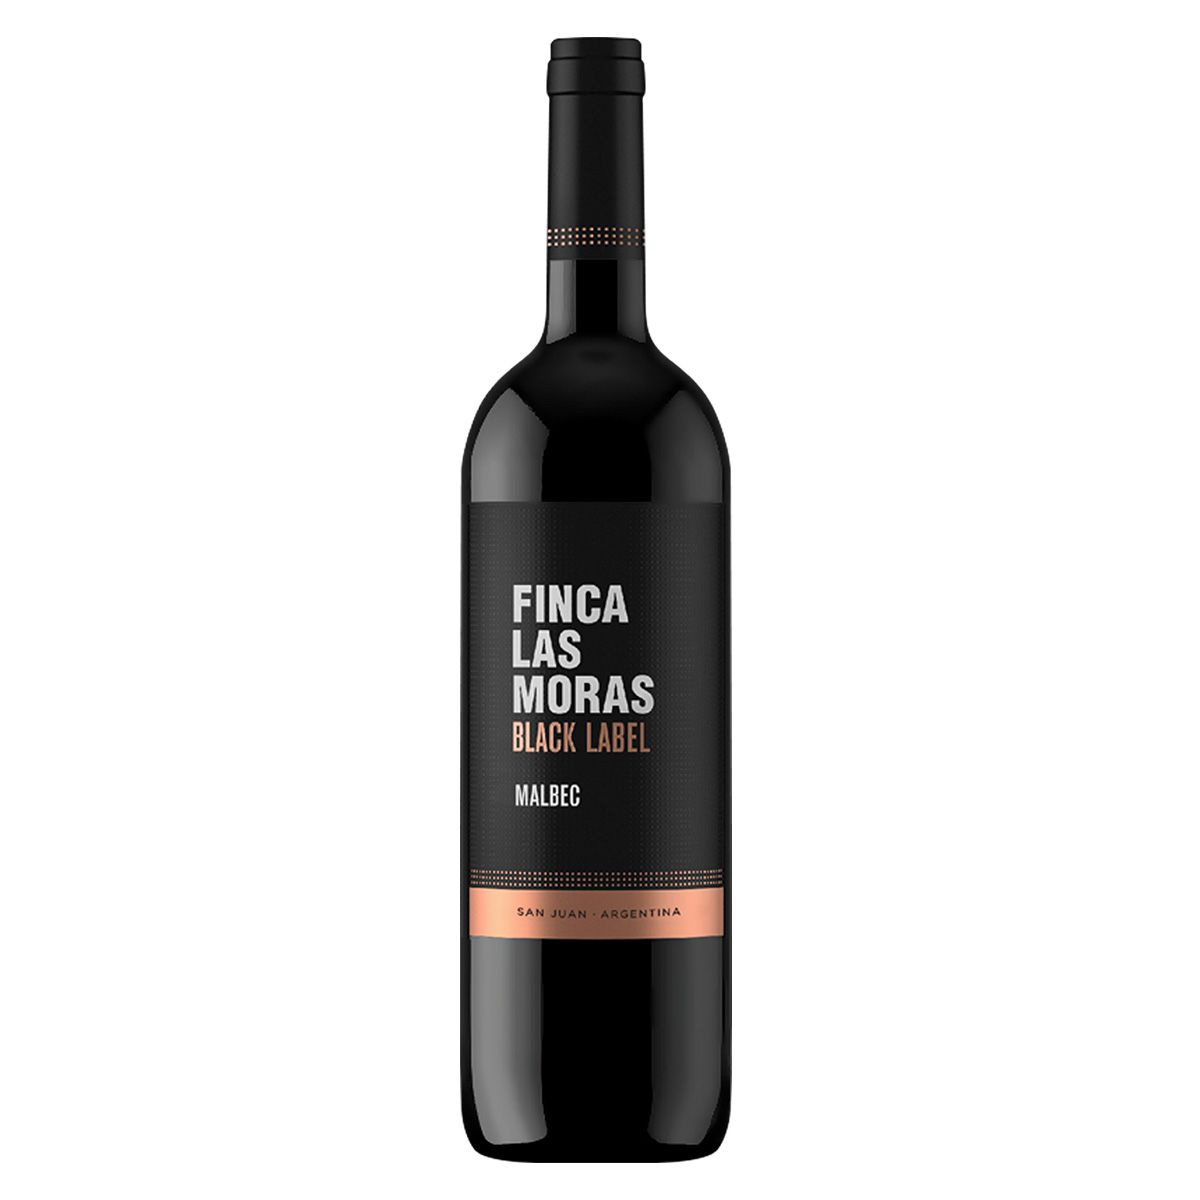 Las Moras Black Label Malbec